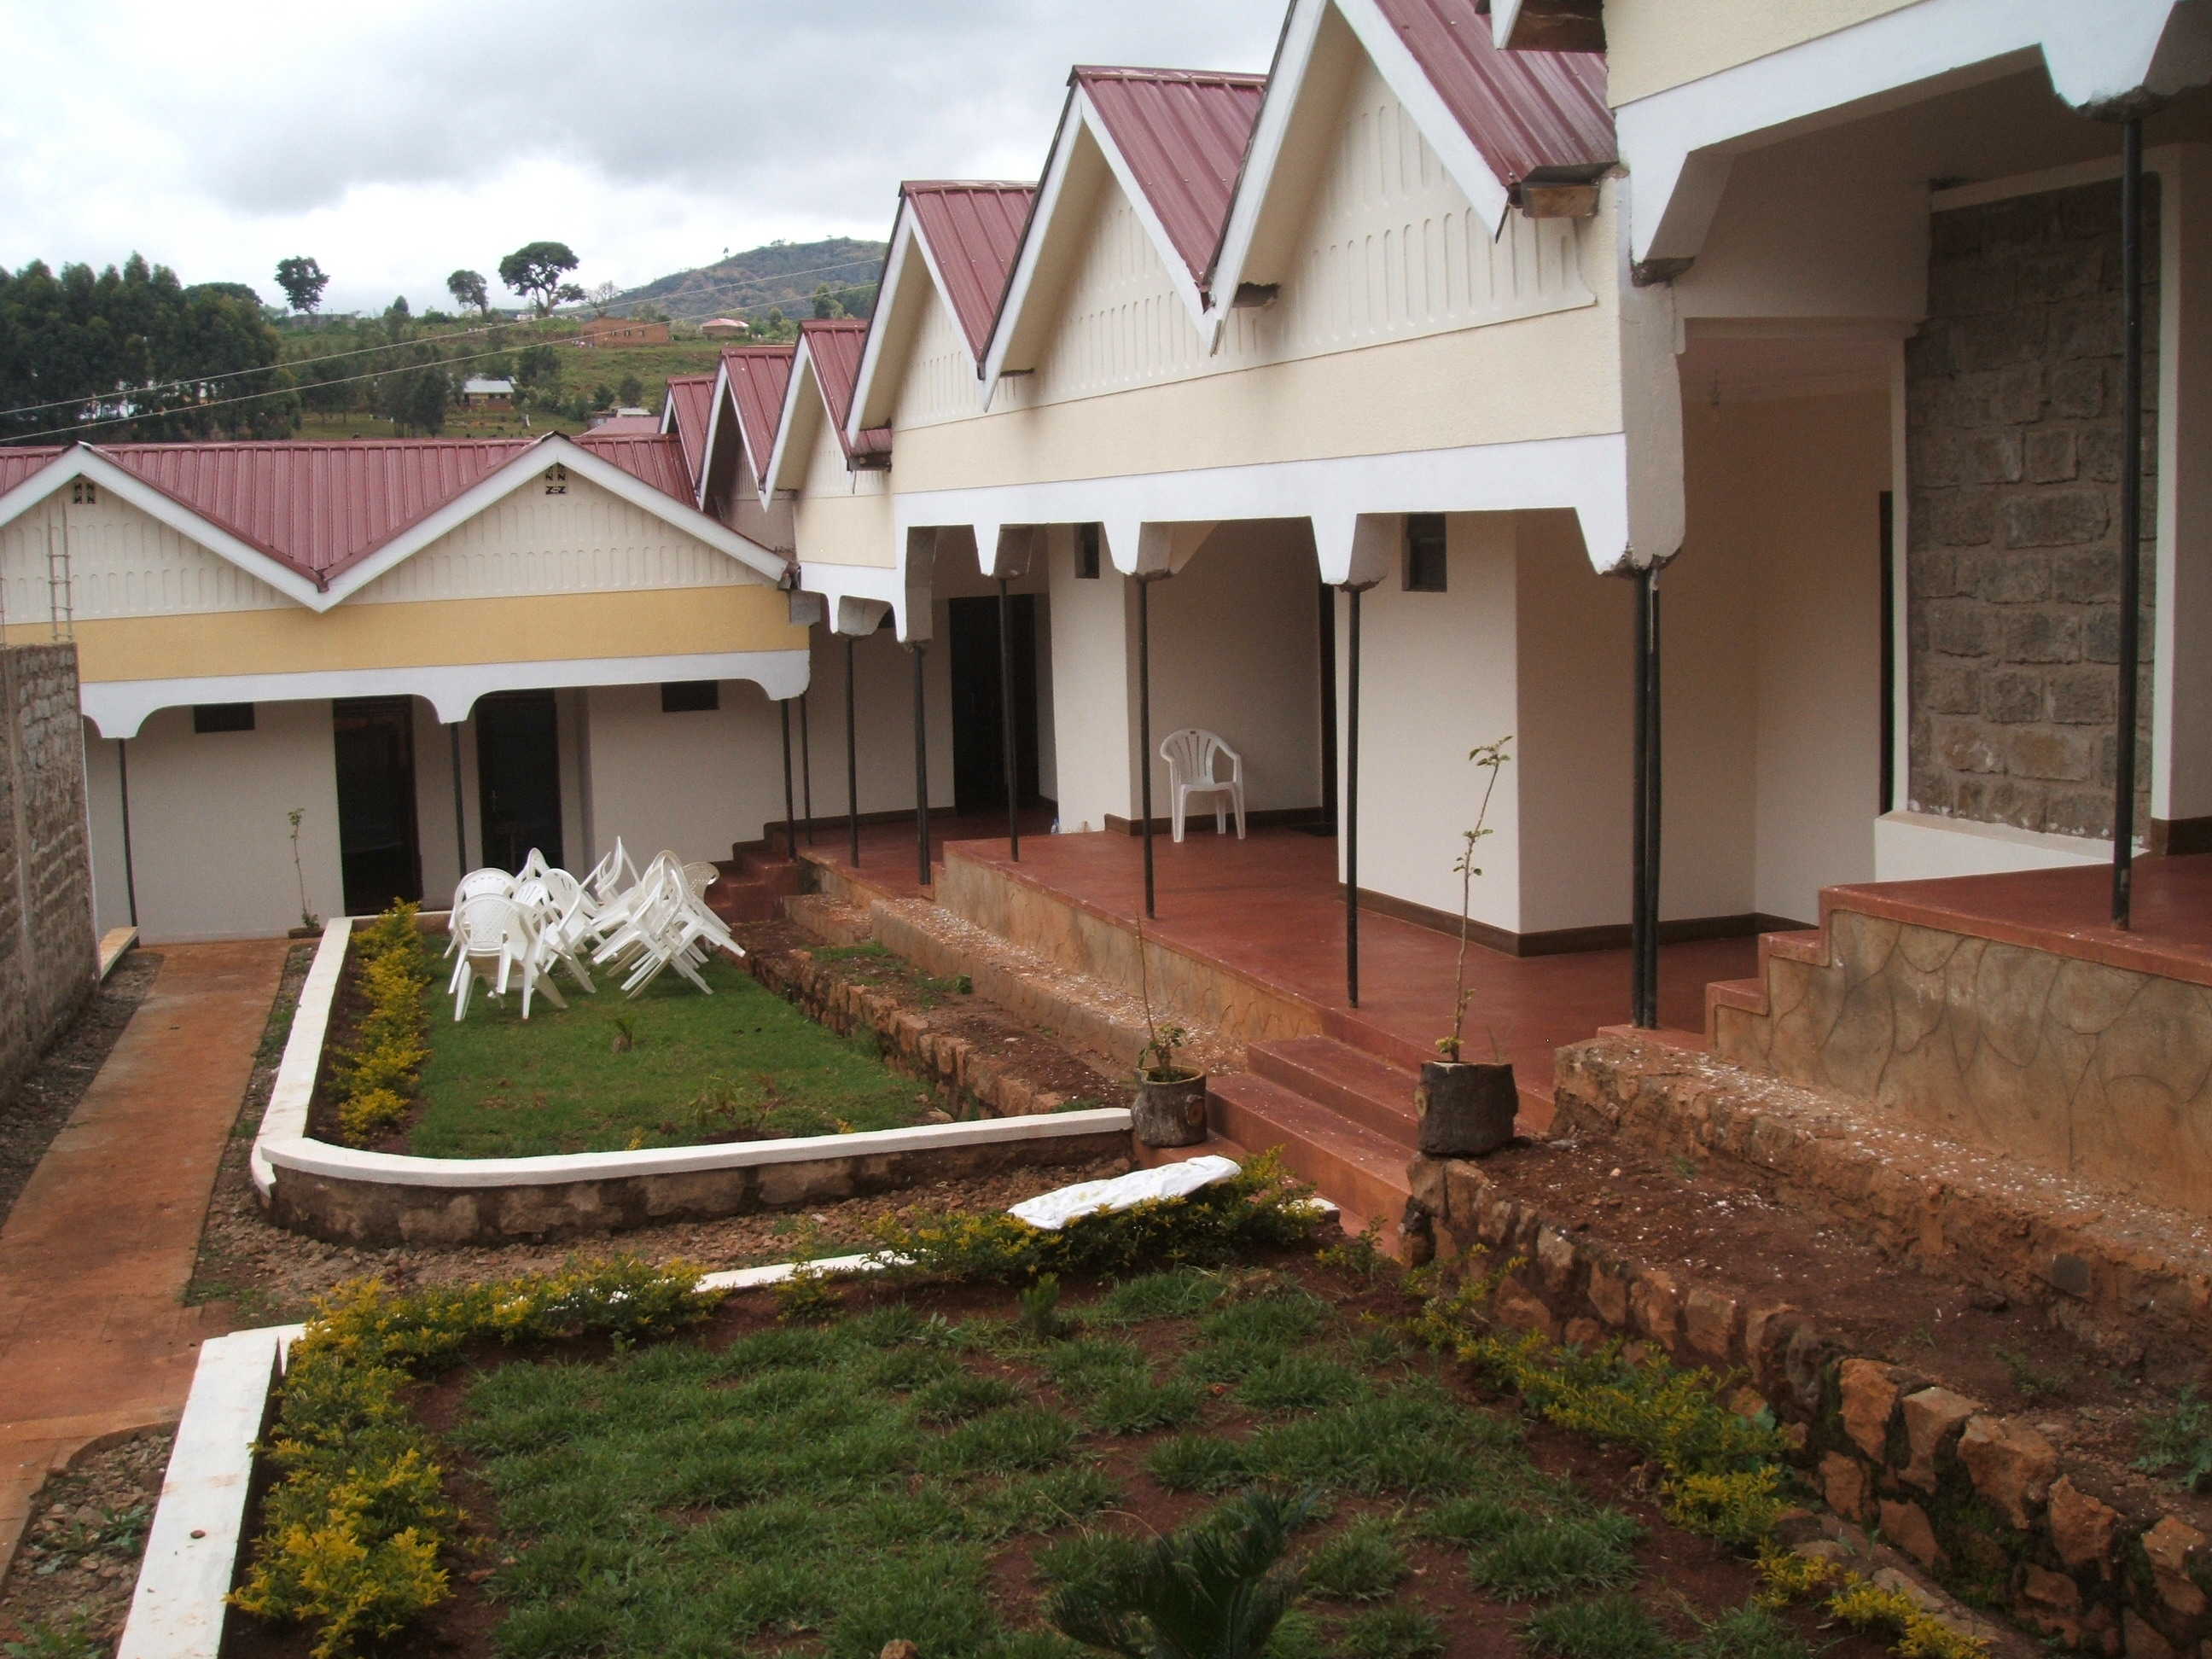 The side view of the Noah's Ark is the hotel Kapchorwa. (Photo by David Mafabi)